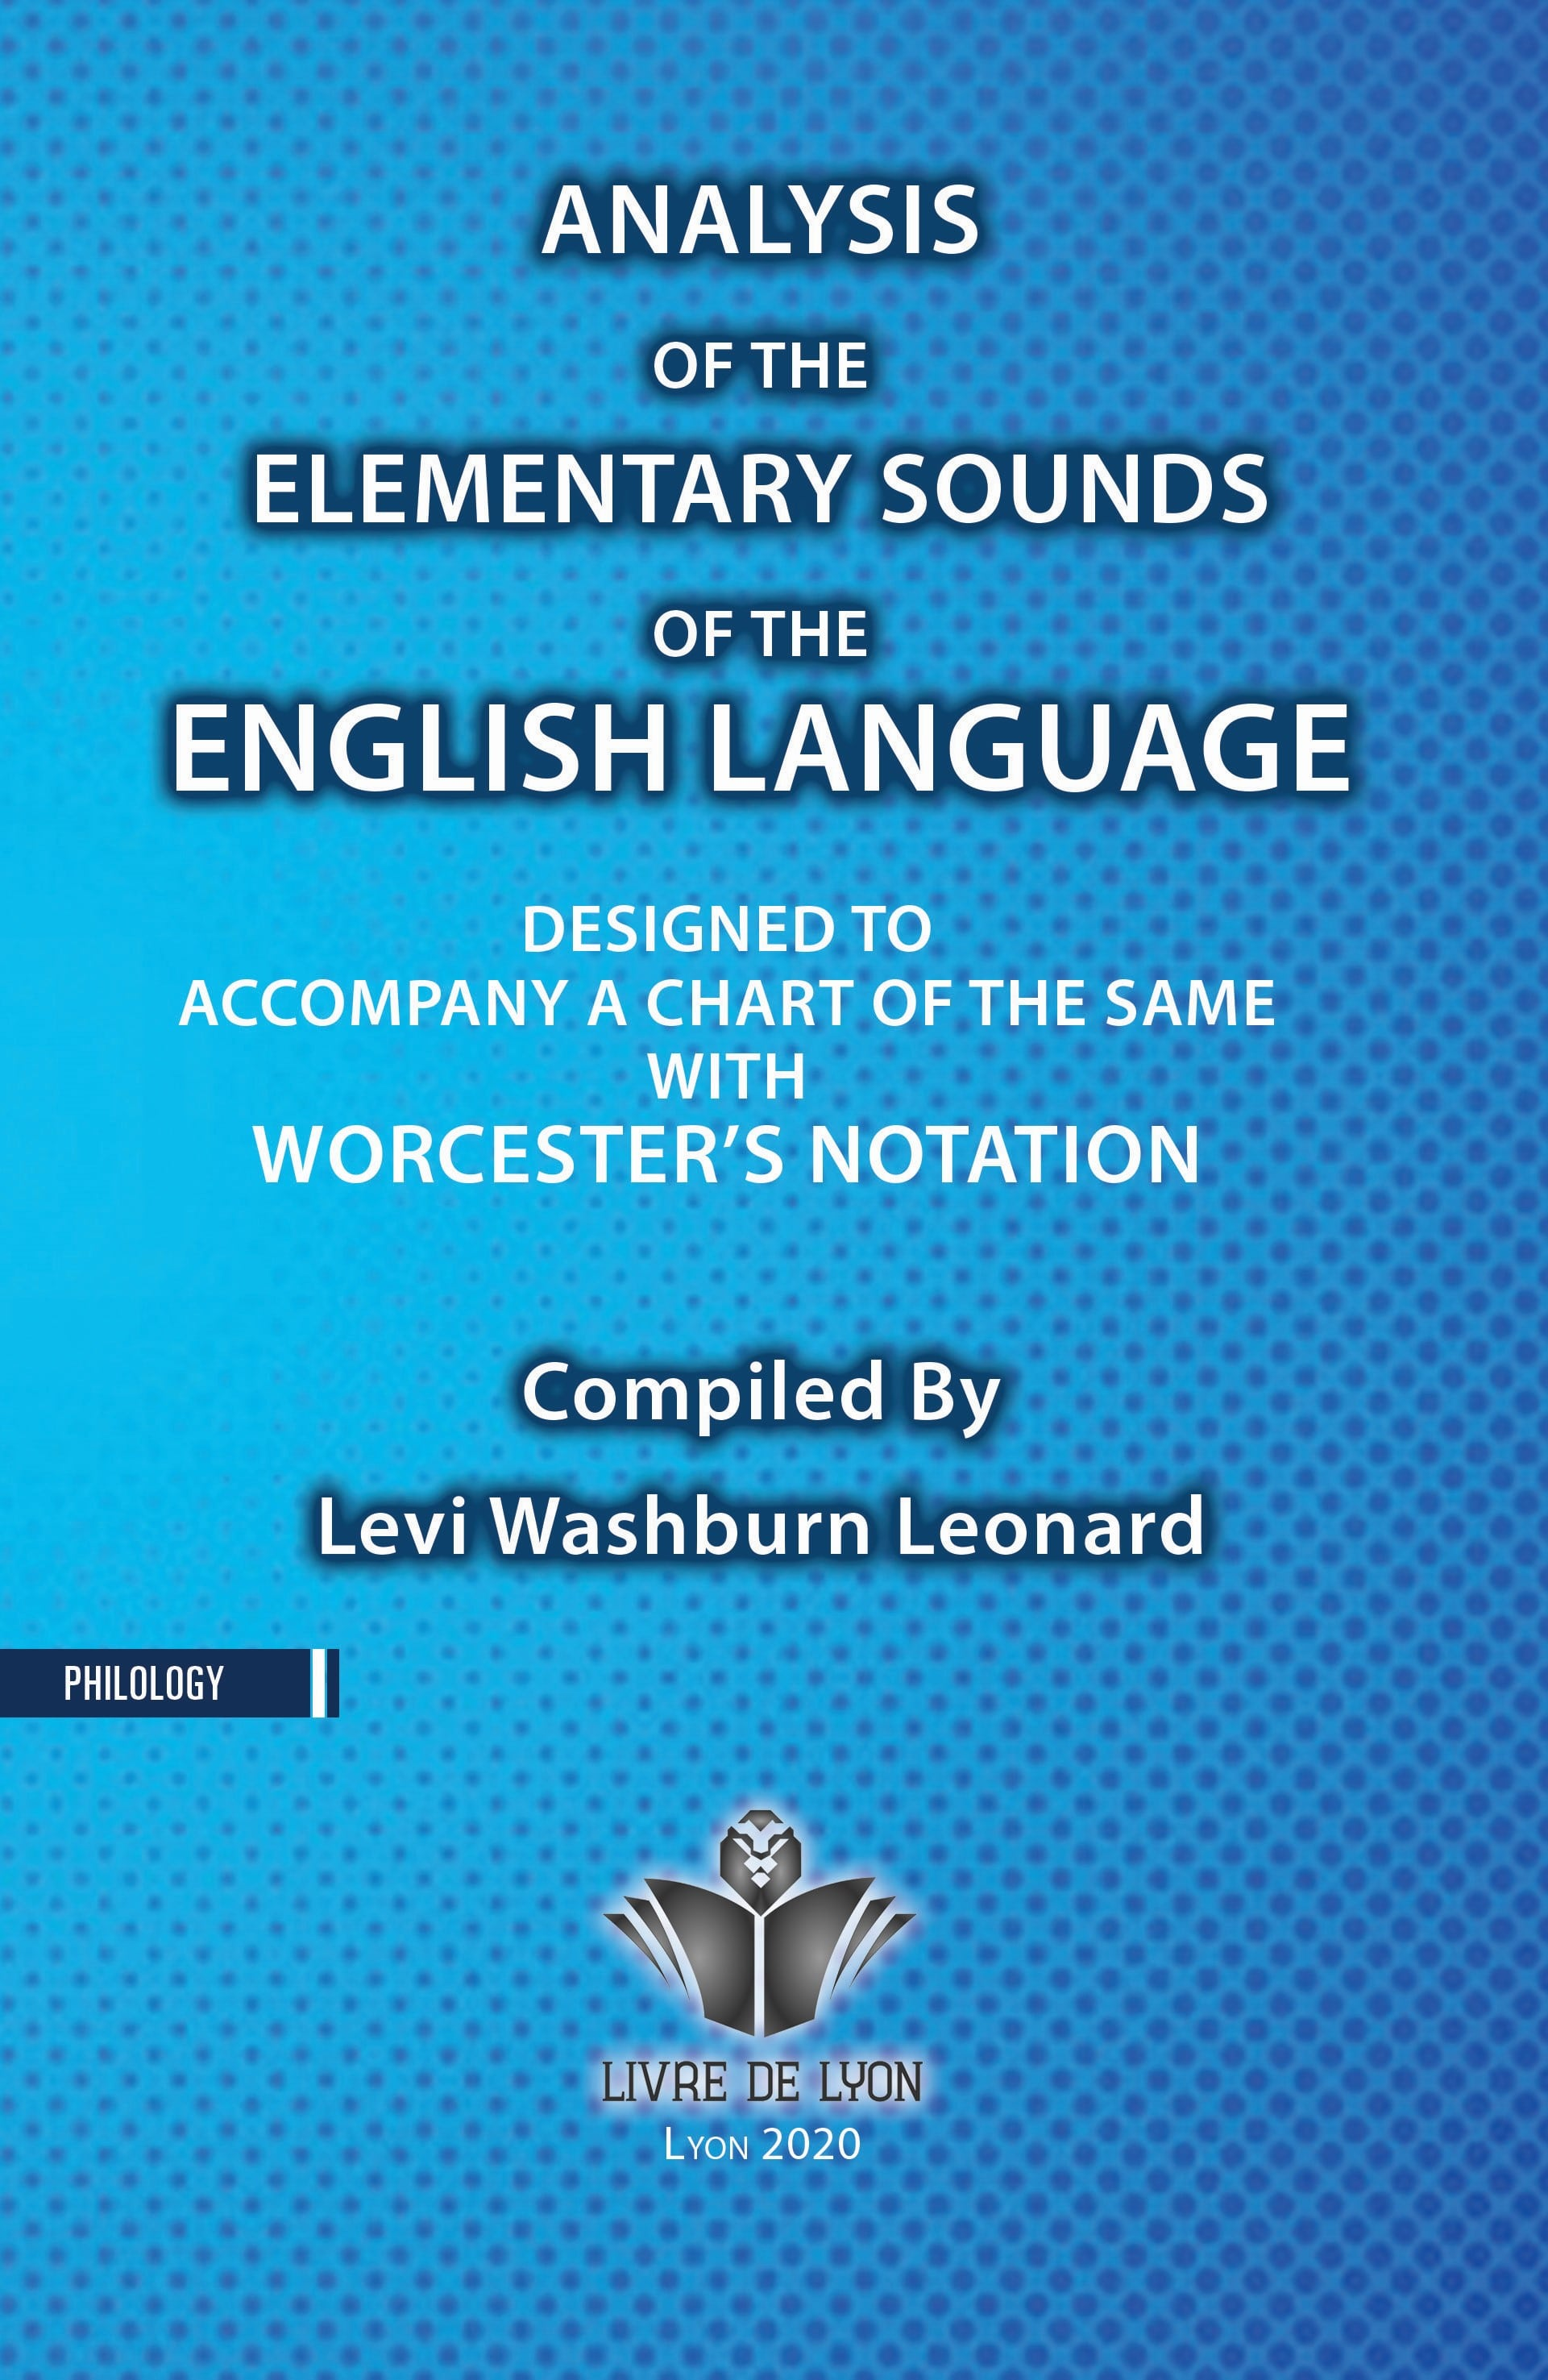 Analysis of the Elementary Sounds of the English Language, Designed to Accompany a Chart of the Same